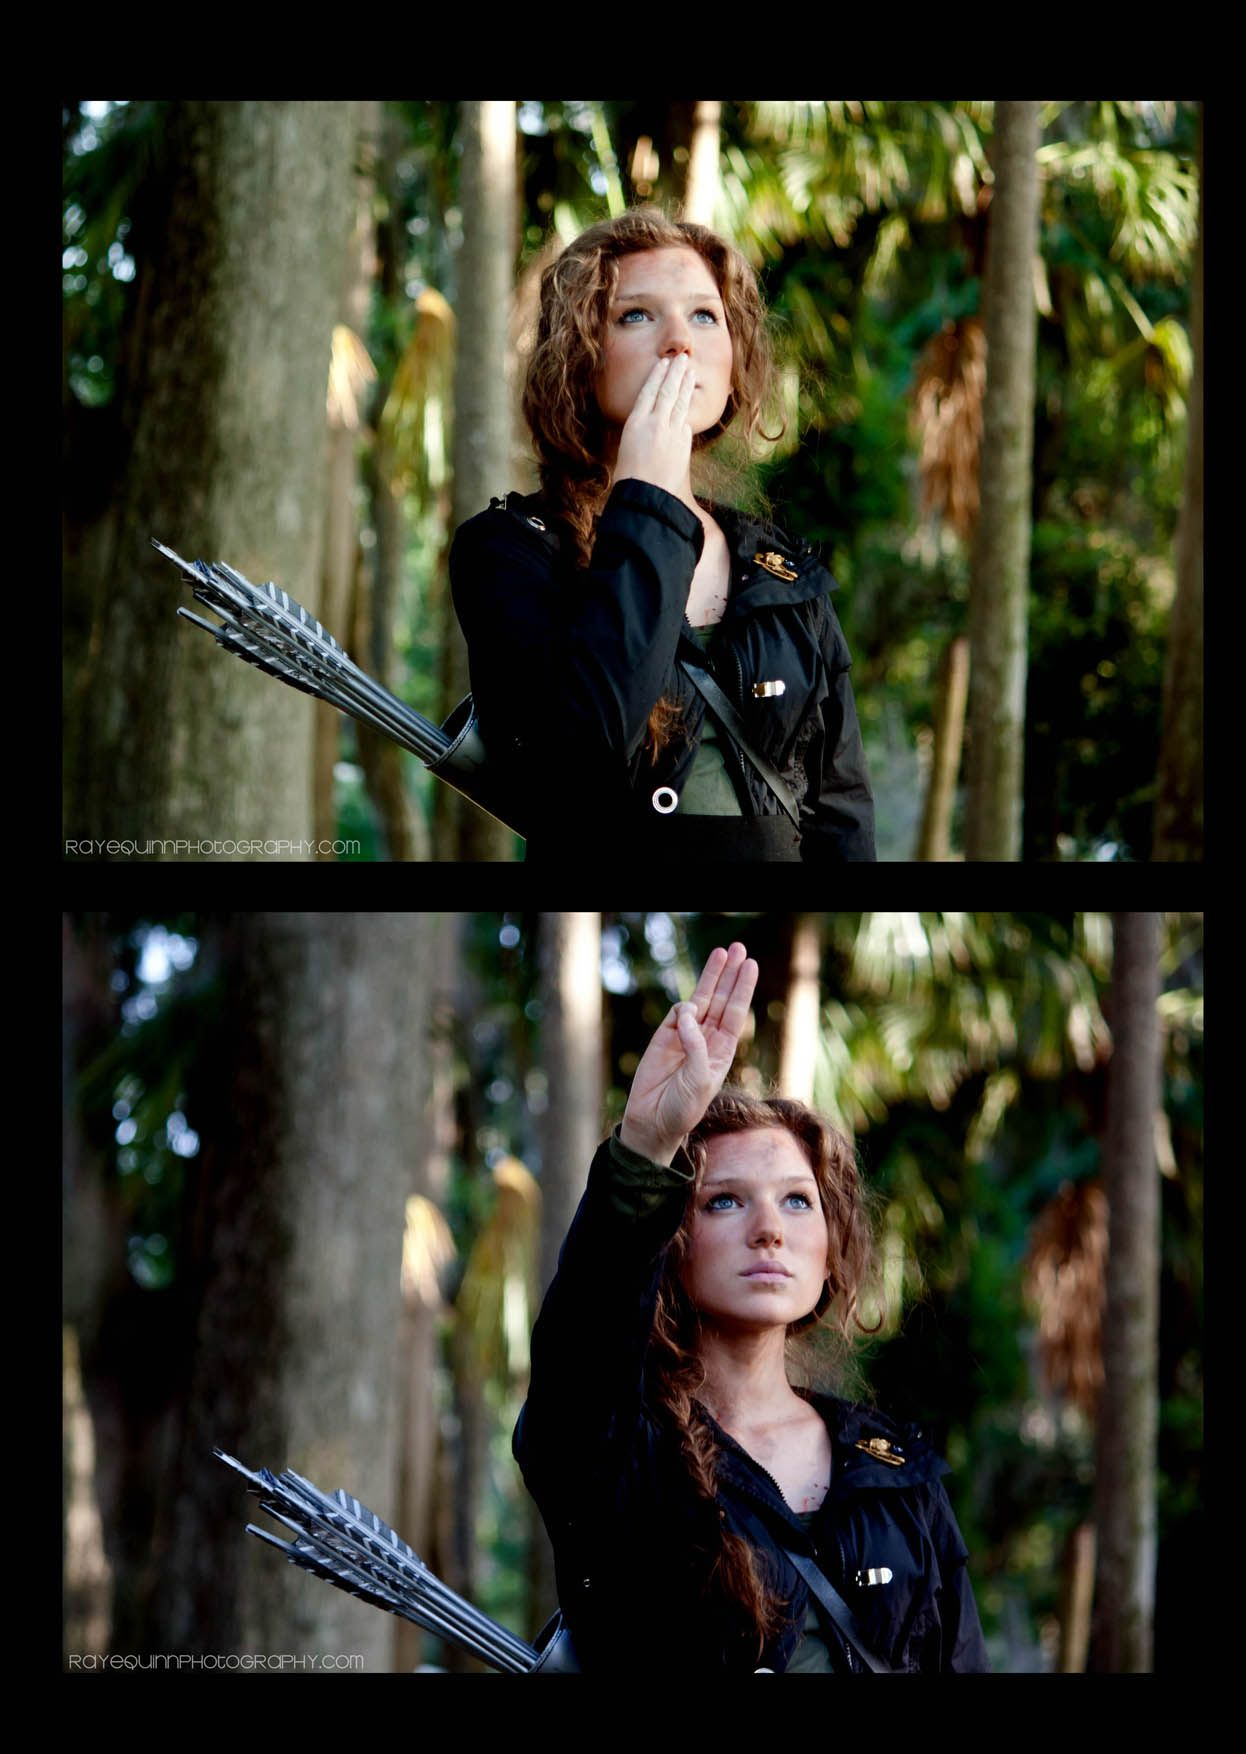 For Rue The Hunger Games Katniss Everdeen With Images Best